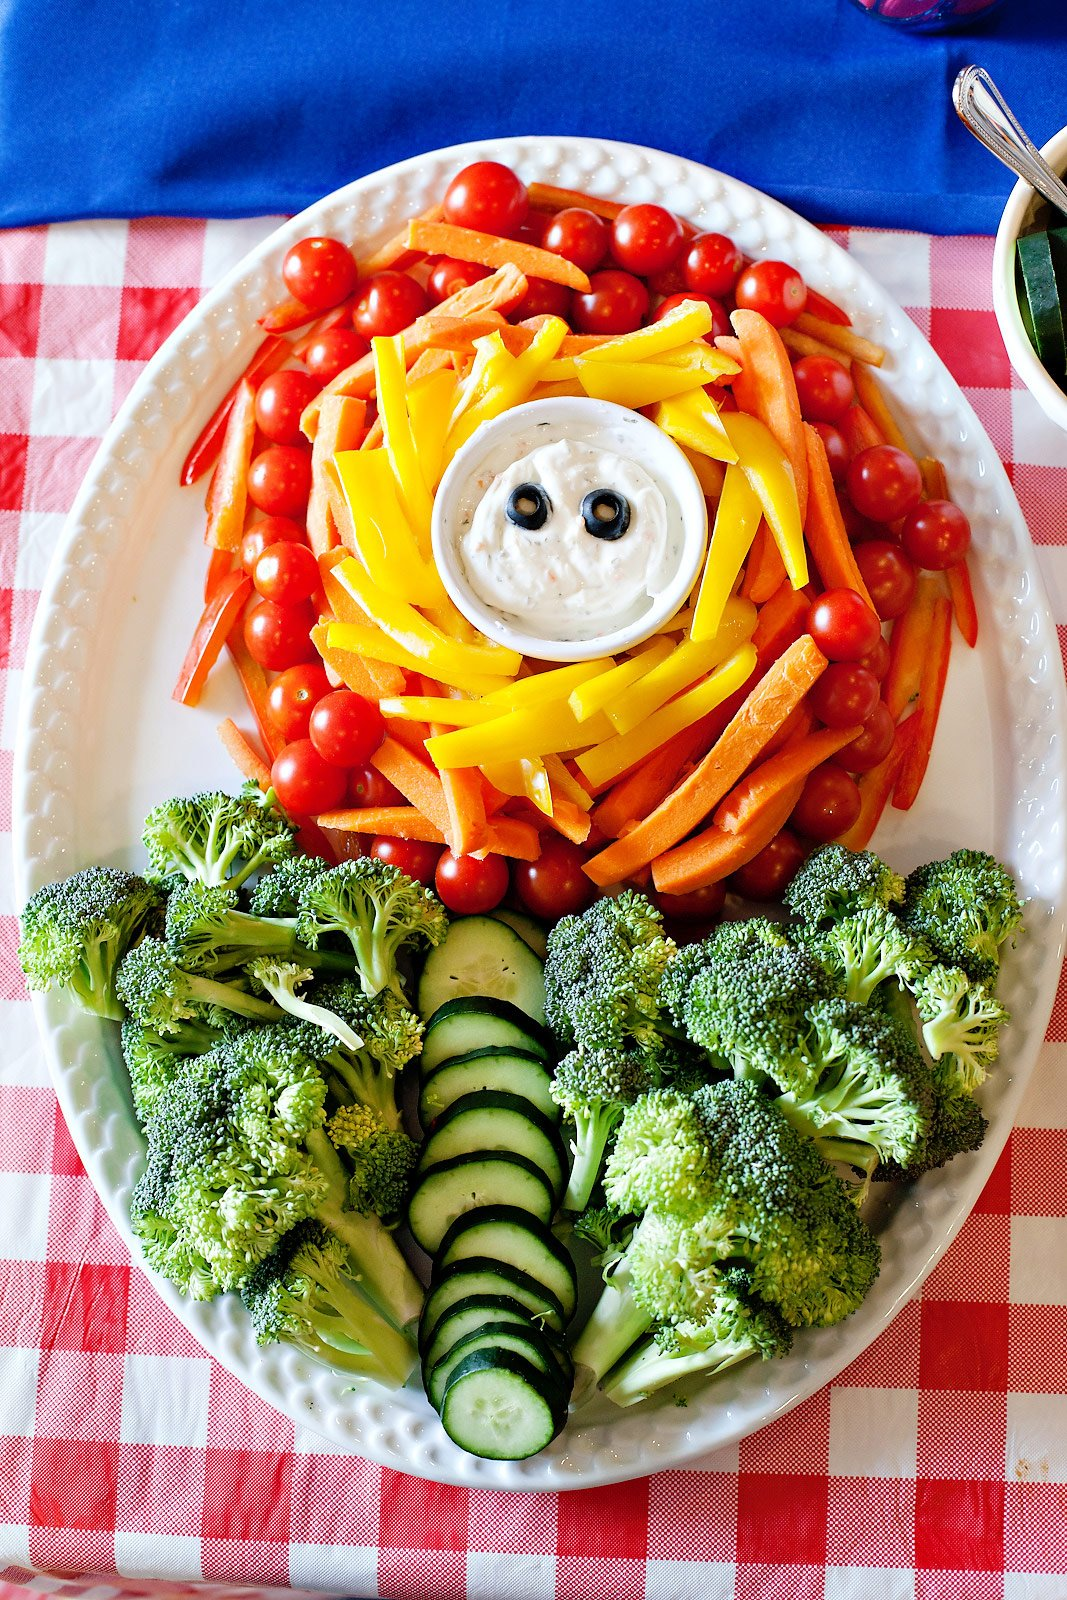 Super Mario Fire Flower Veggie Tray